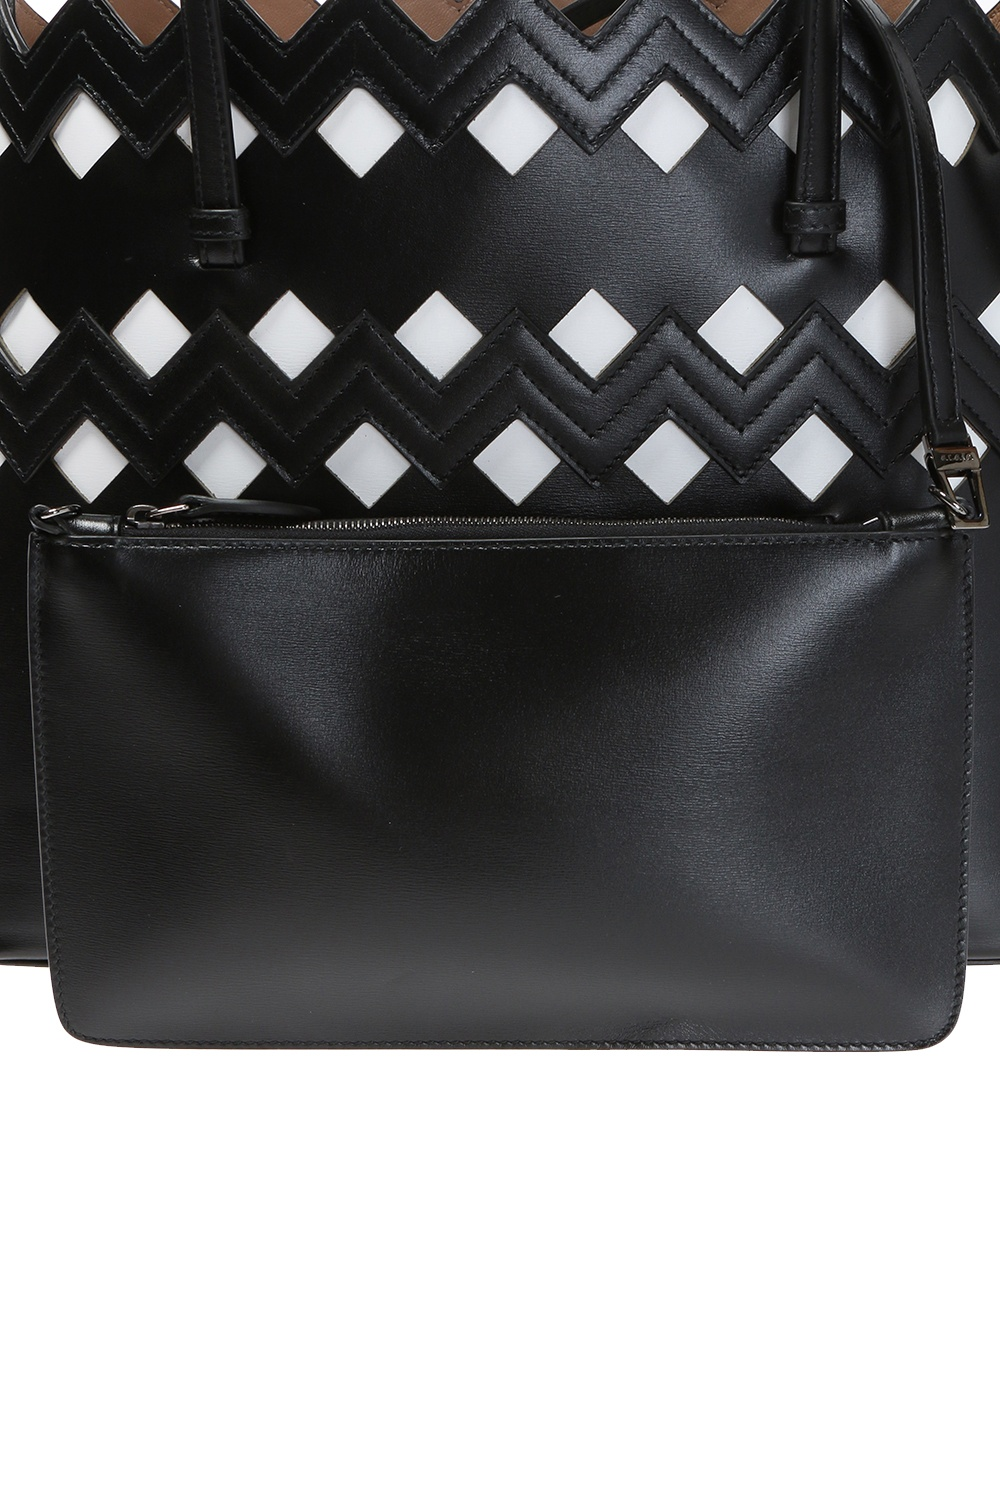 Alaia Stitching detail shoudler bag